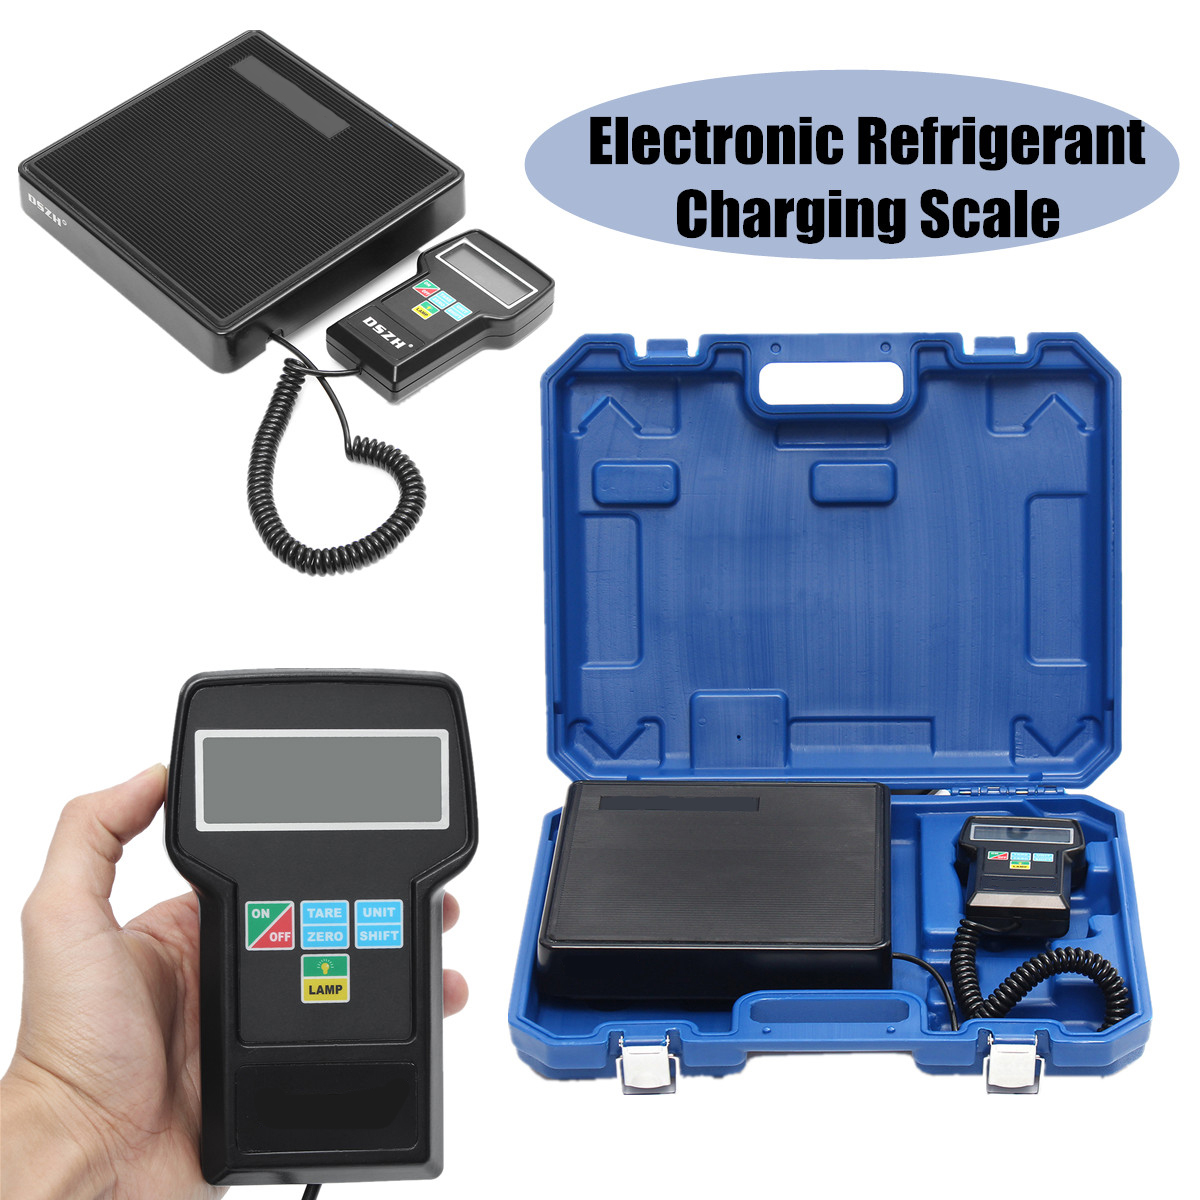 Digital Electronic Refrigerant Charging Scale Weighing Weight HVAC Precision Car Refrigerant With English Instruction 90kgs capacity digital refrigerant scale for hvac and refrigeration refrigerant charging scale